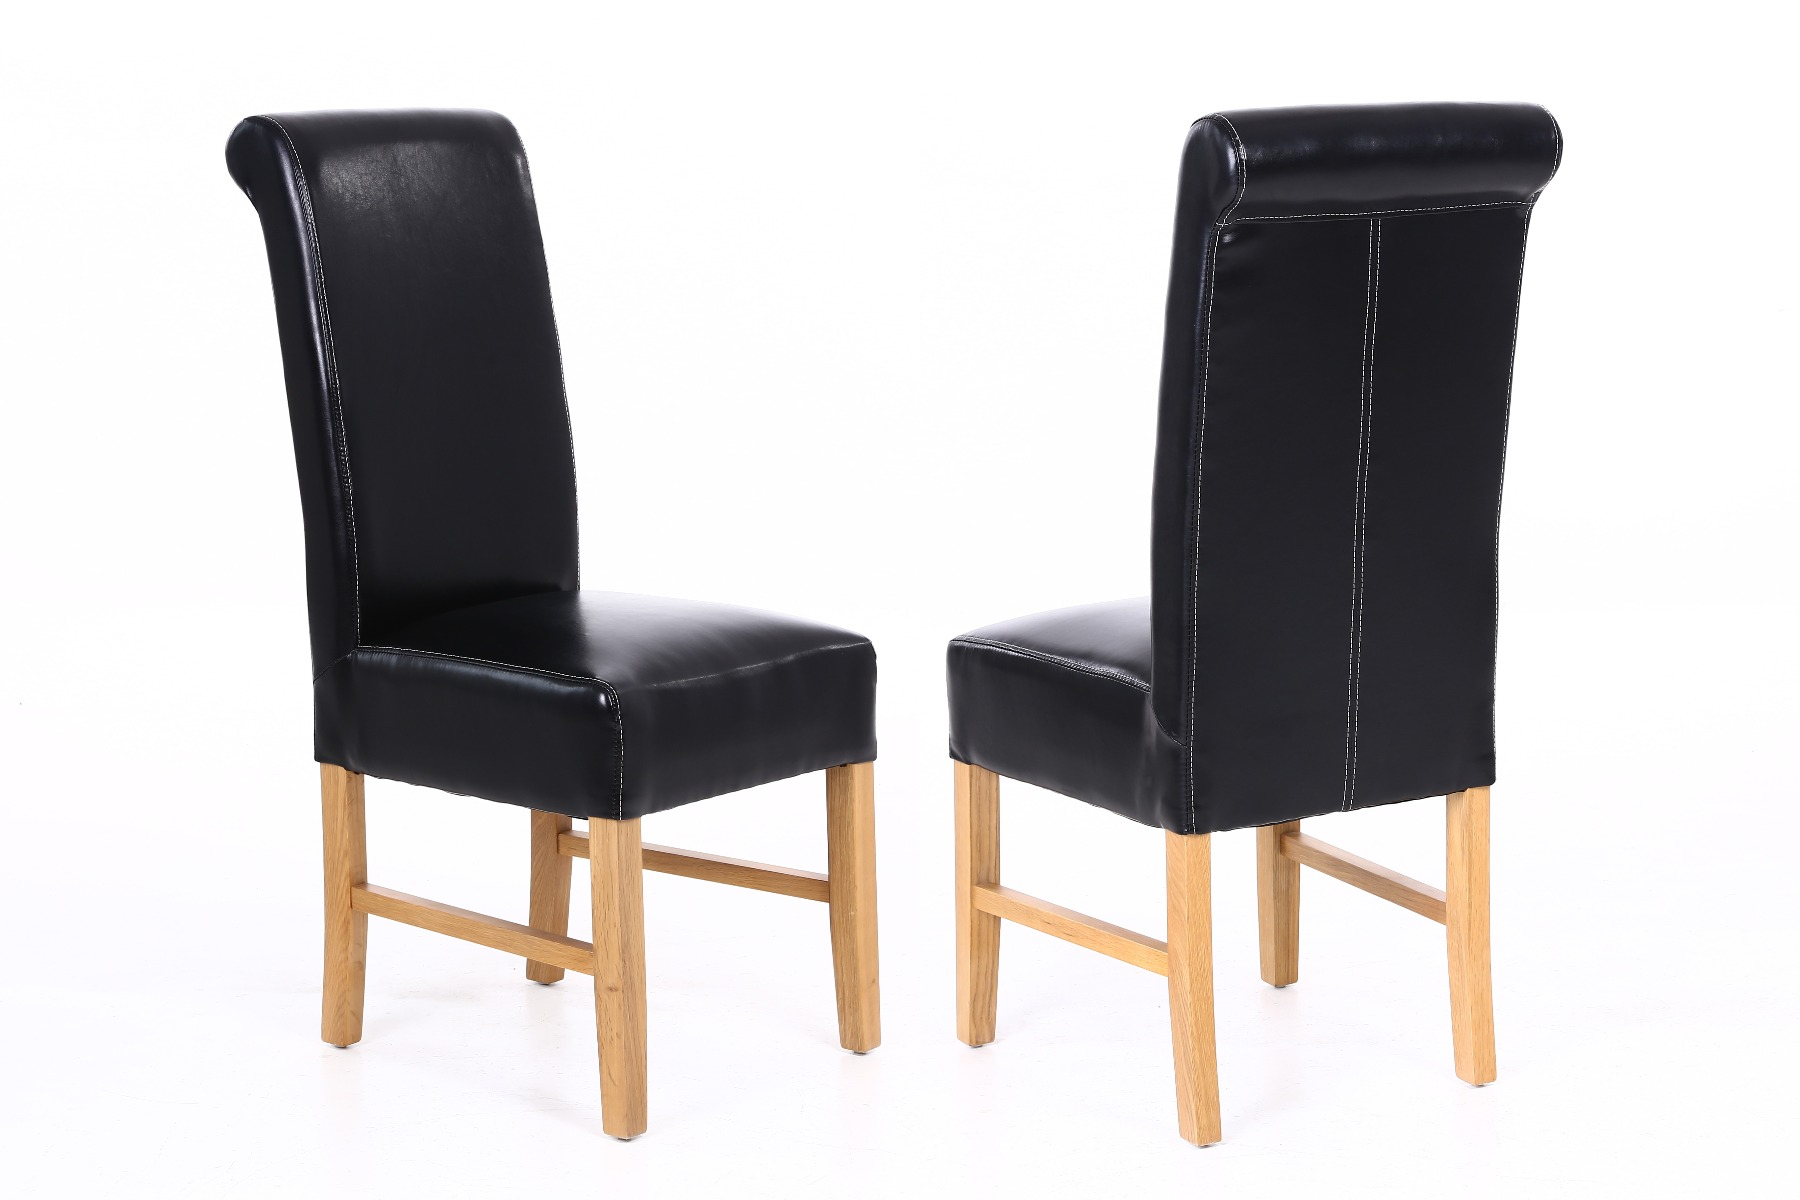 Fine Emperor Black Leather Scroll Back Dining Chairs With Oak Legs Autumn Sale Andrewgaddart Wooden Chair Designs For Living Room Andrewgaddartcom